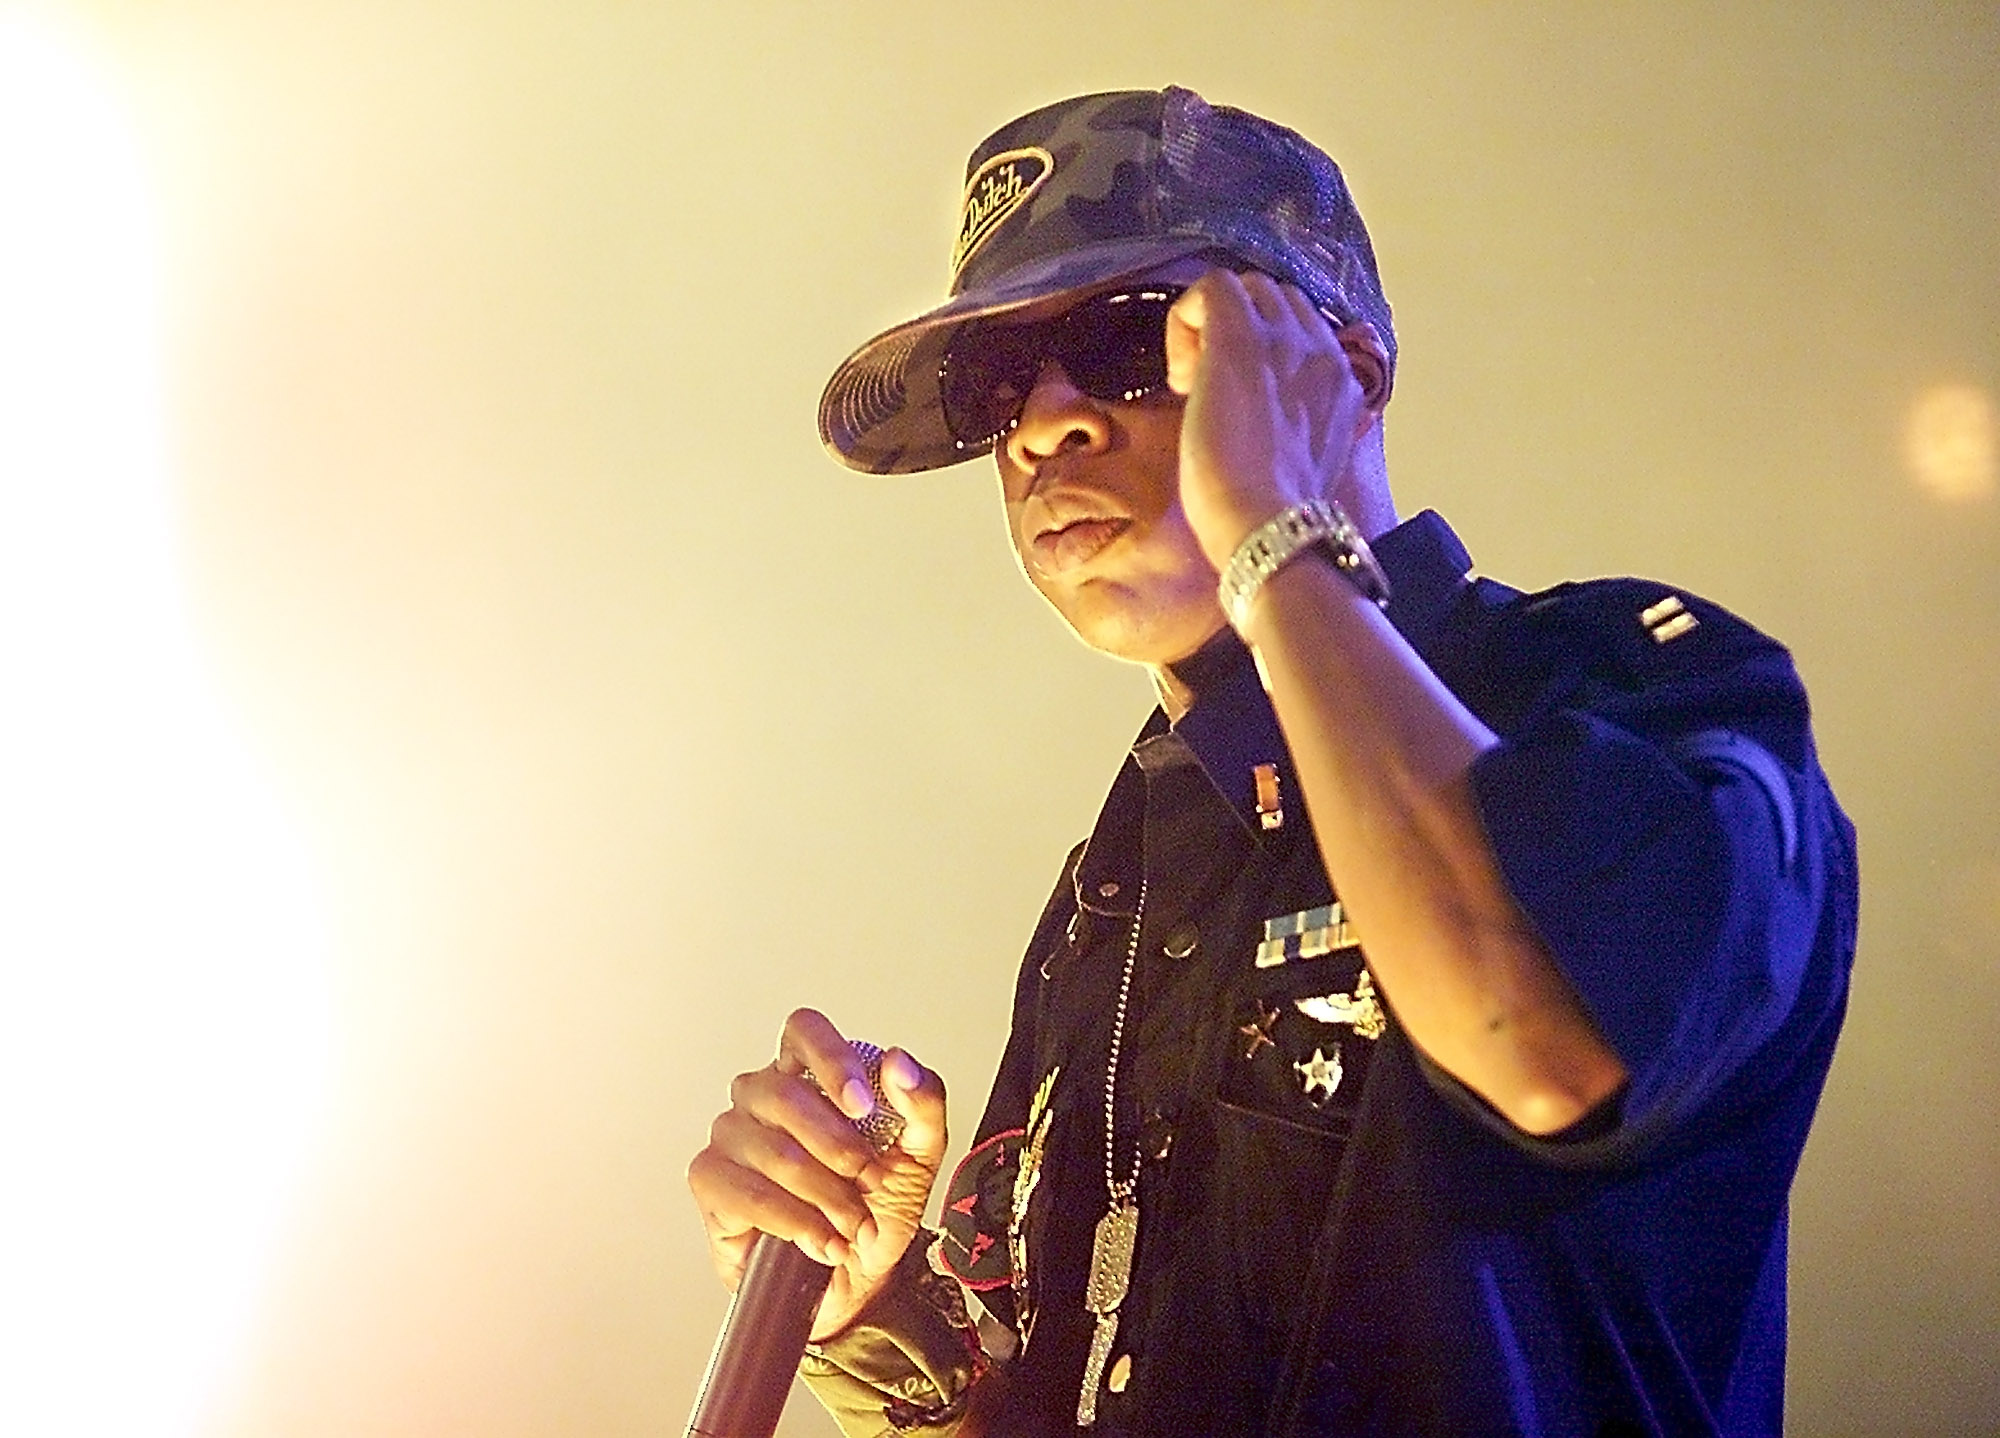 Rapper Jay-Z adjusts his sunglasses as he performs during a stop on the Roc the Mic tour at the Mark of the Quad-Cities in Moline, Ill., Tuesday, July 15, 2003